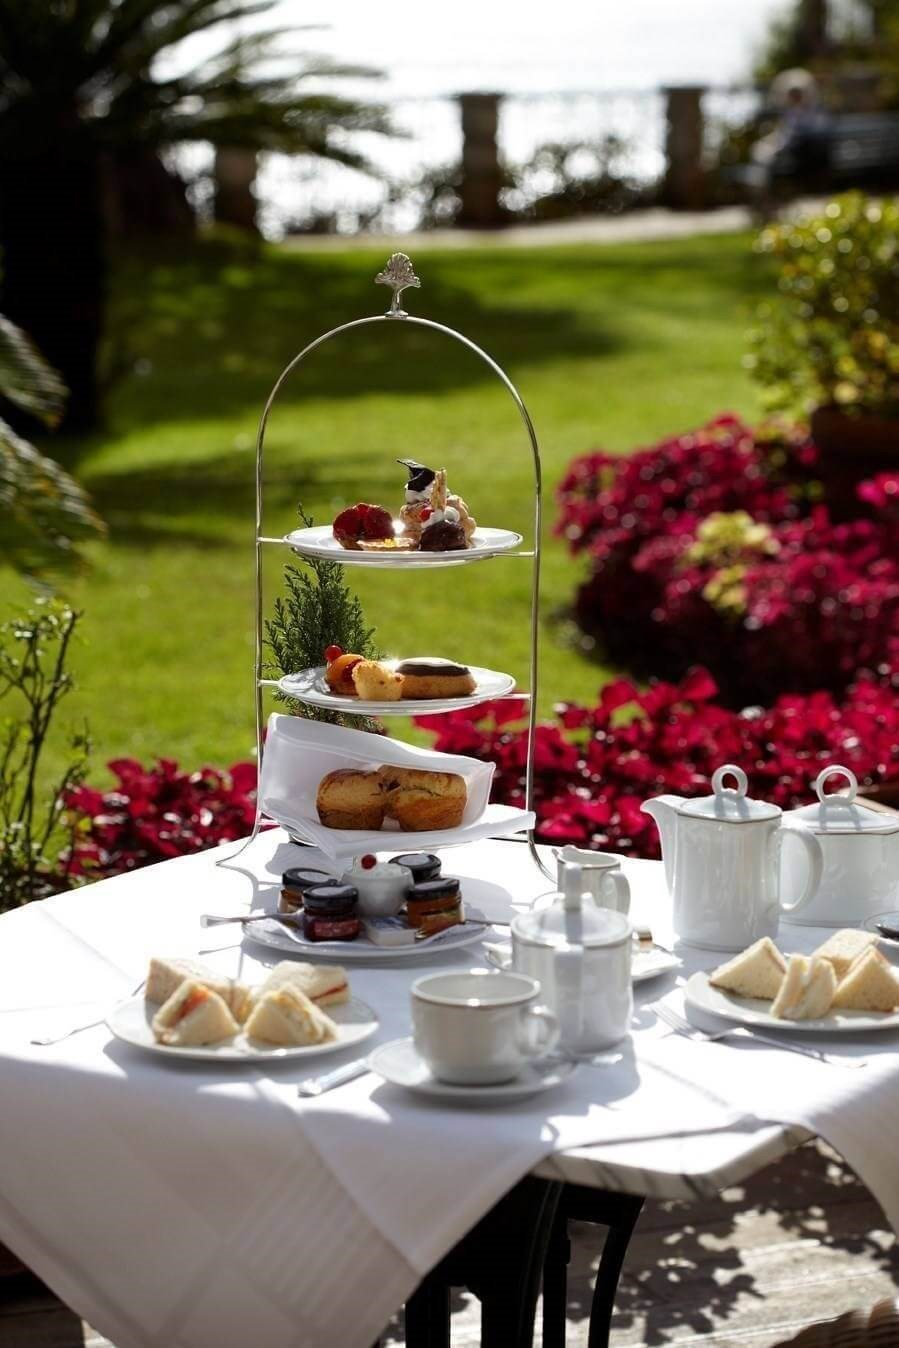 Hotel The Cliff Bay - Madeira Island - Afternoon Tea